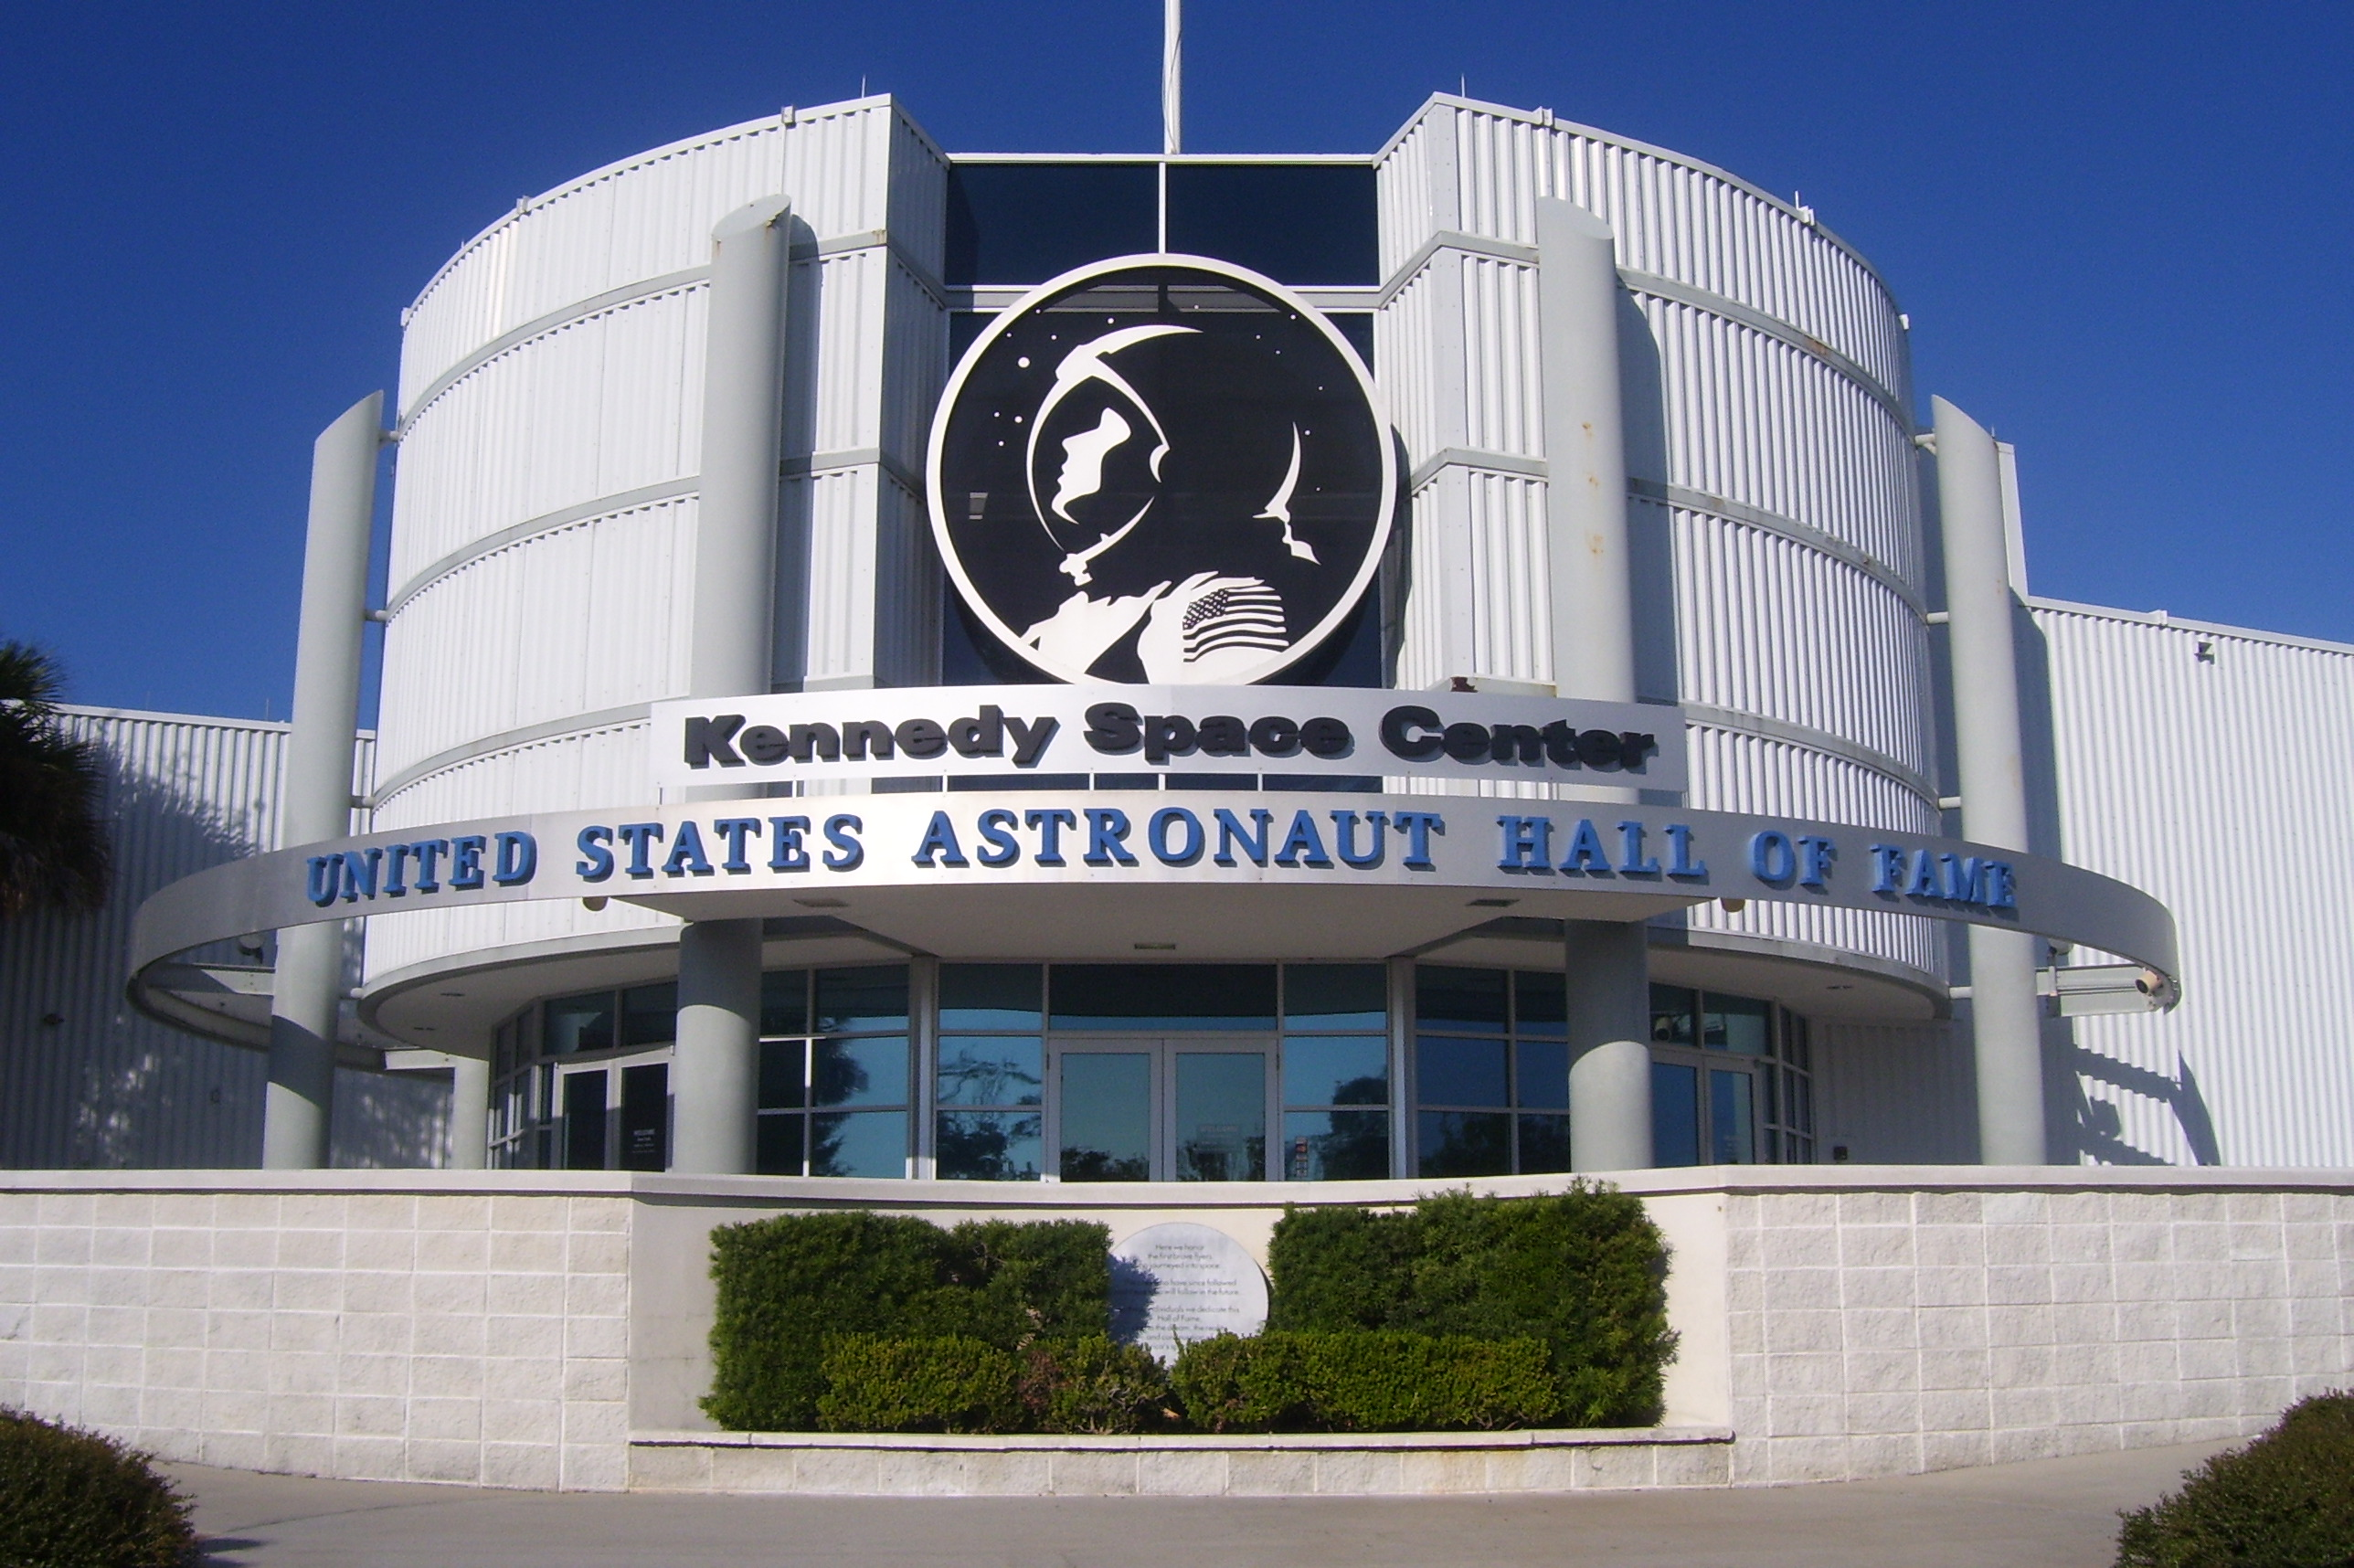 united states astronaut hall of fame - photo #15